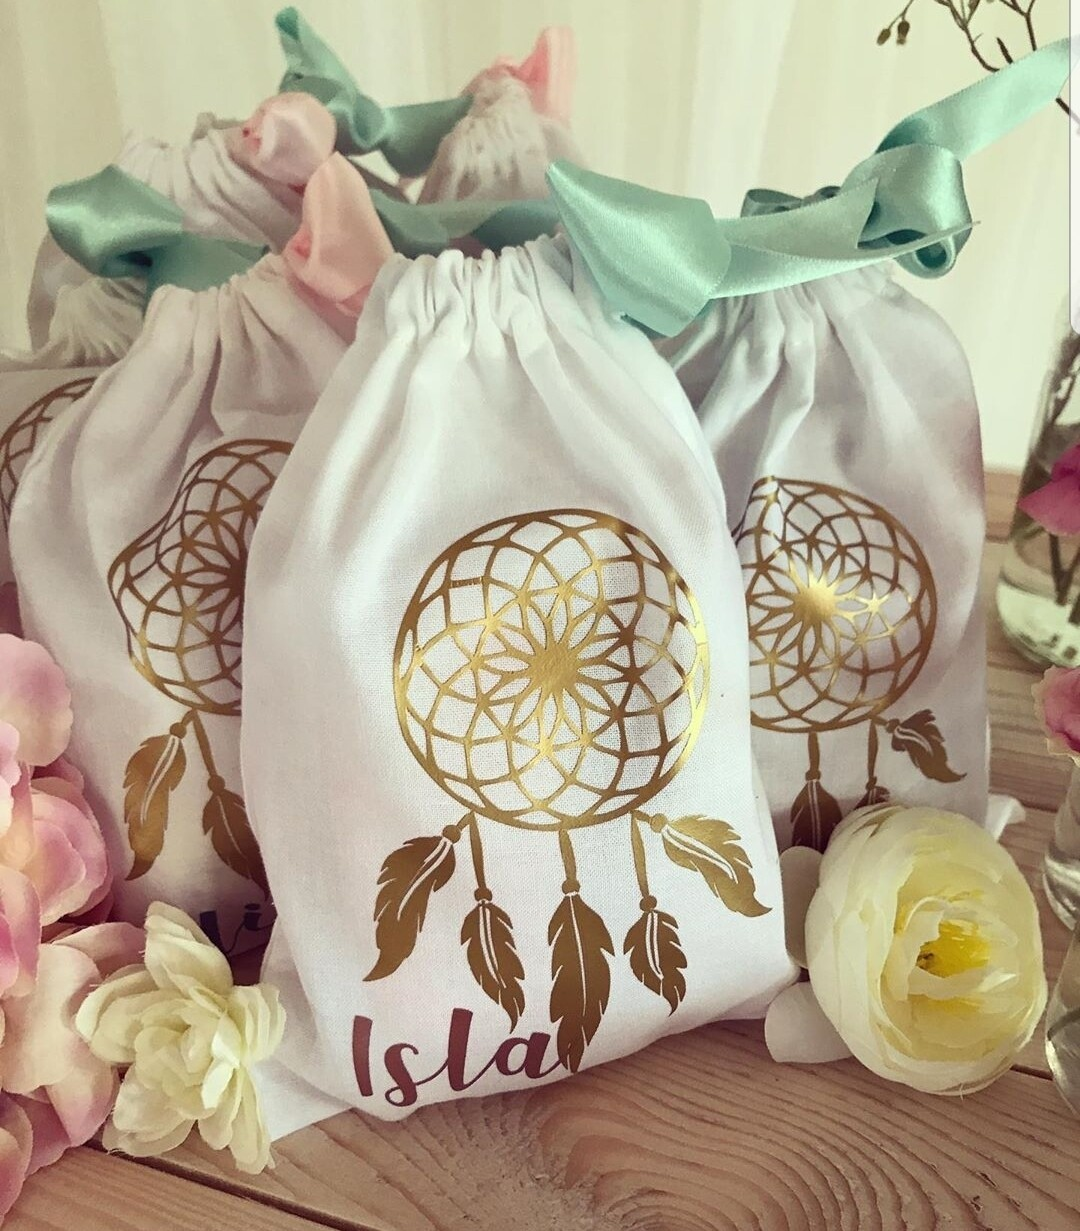 Party bag ideas. Fabric party bag with dream catcher